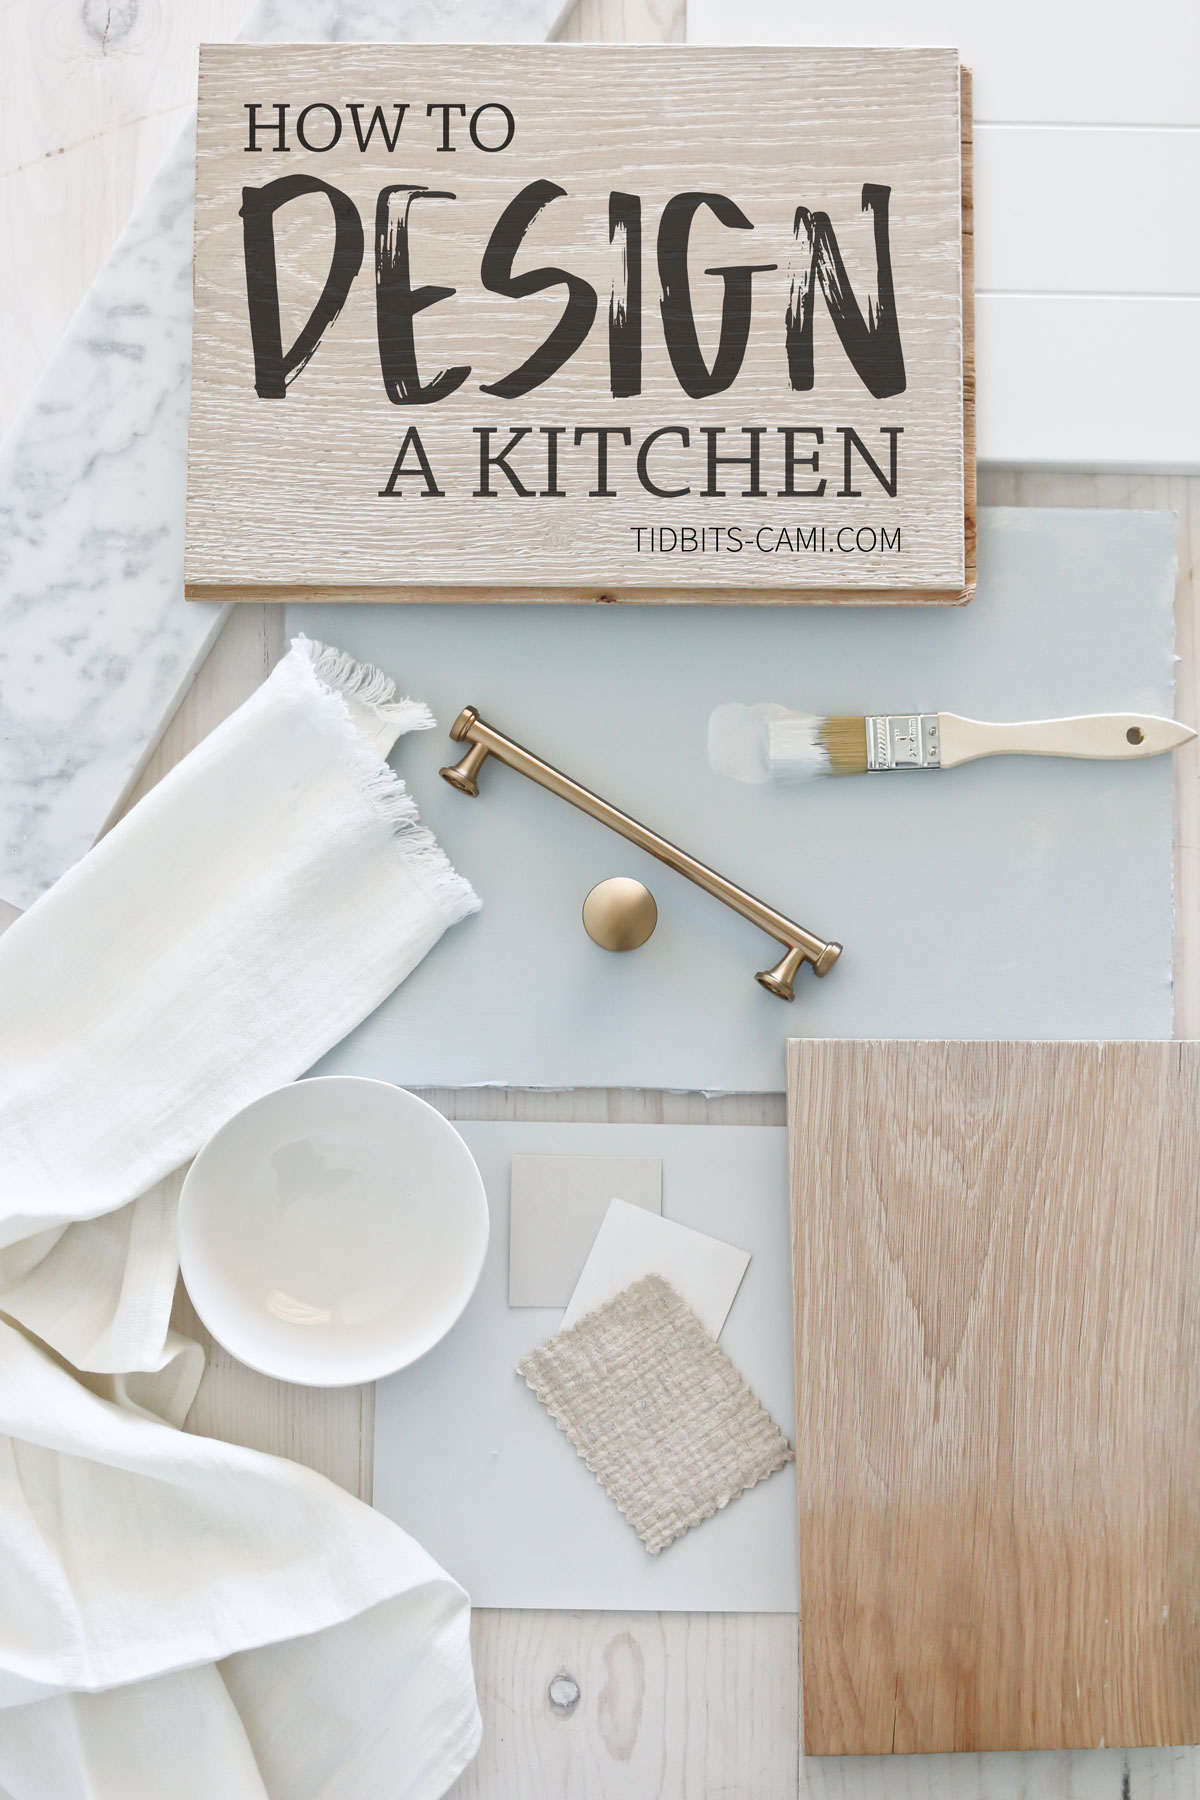 How to Design a Kitchen - the DIY way!